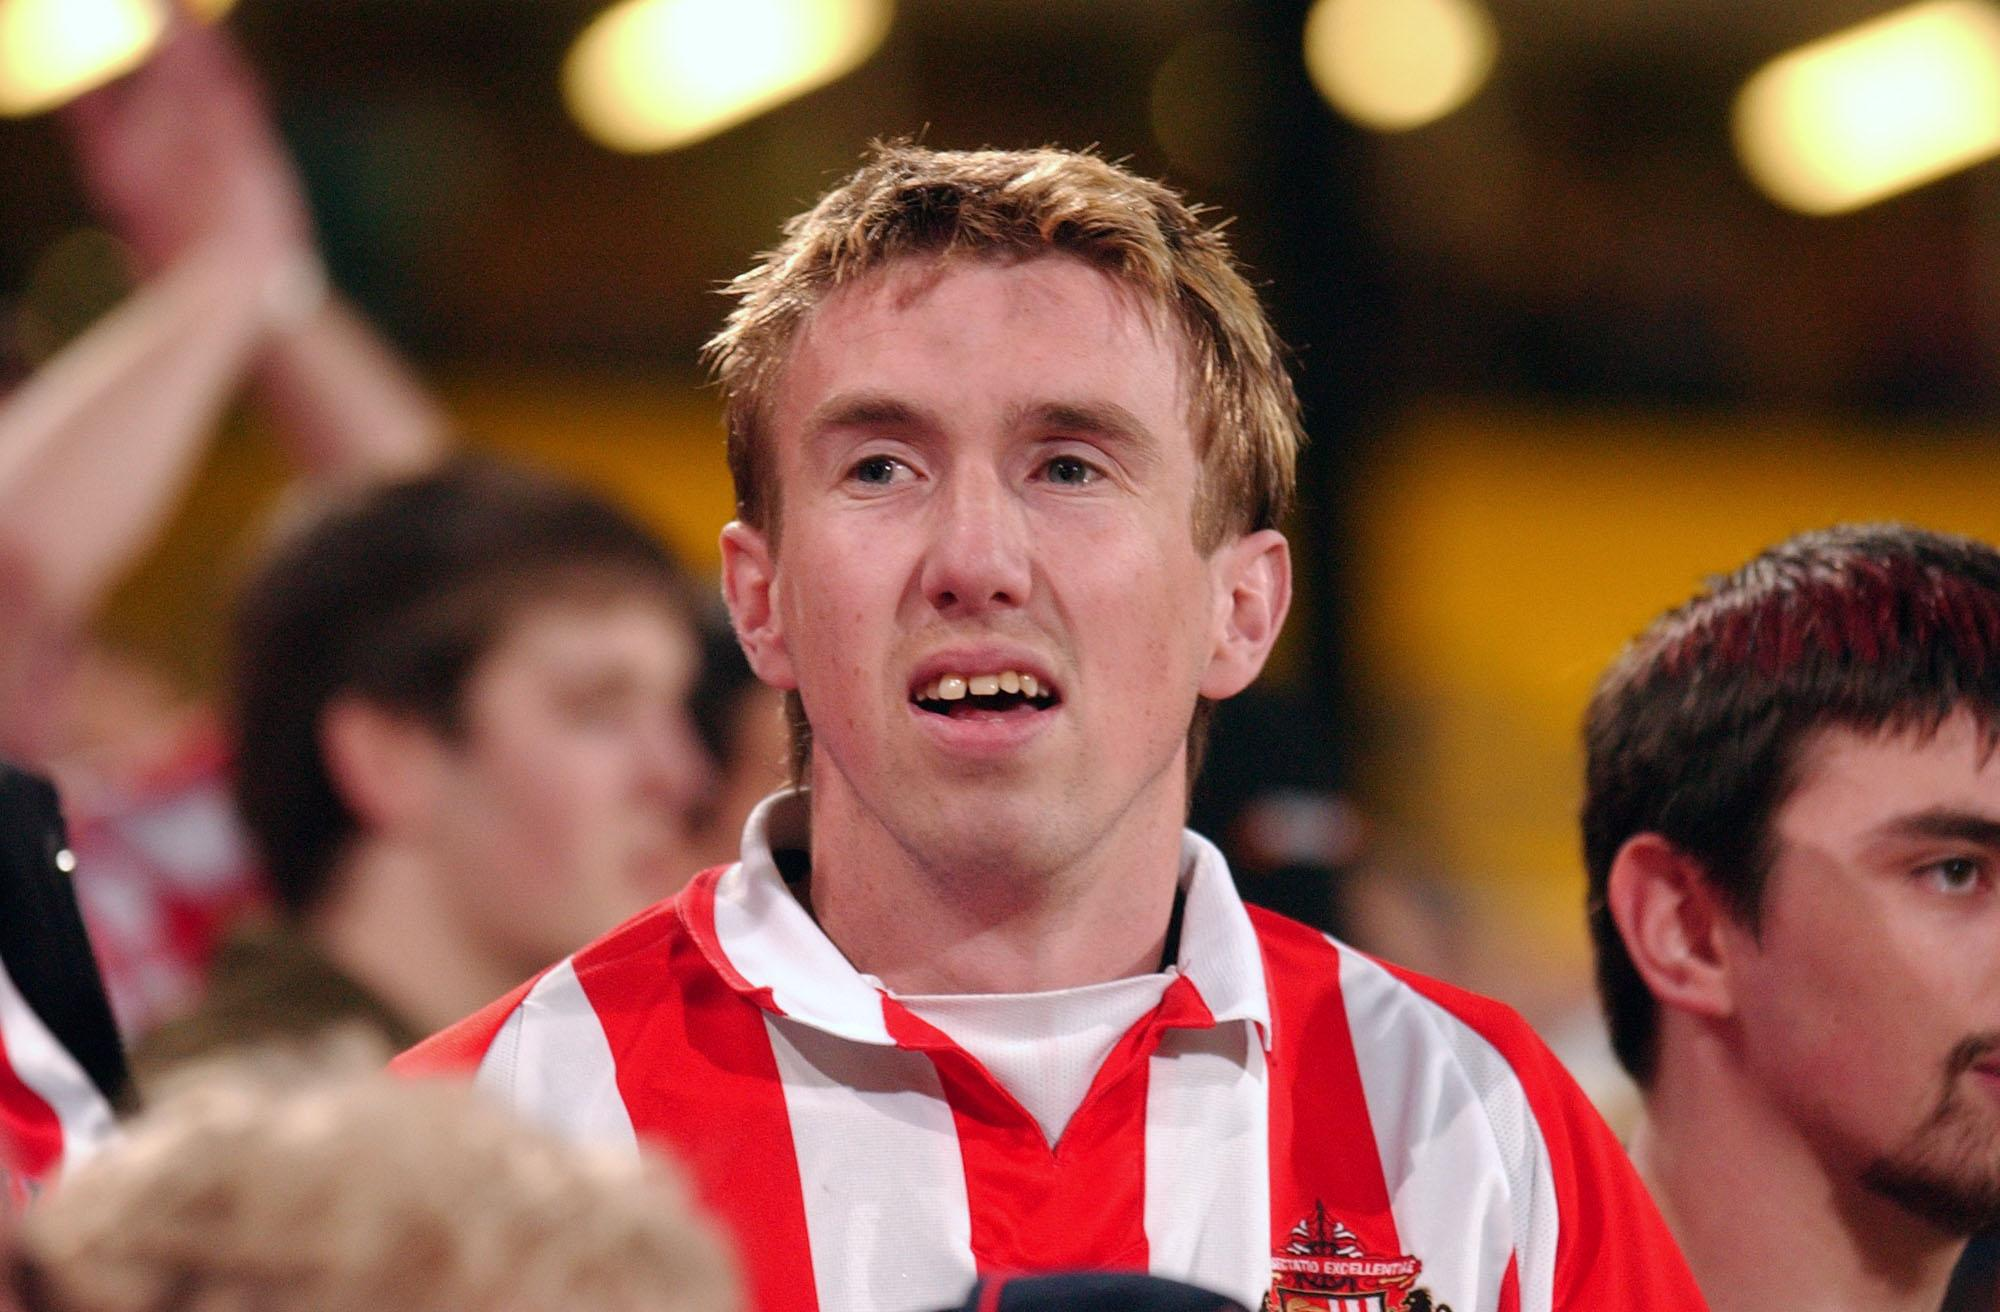 Sunderland AFC in the 2000s: 16 retro fan photos - can you spot yourself in the passionate crowds? - Sunderland Echo